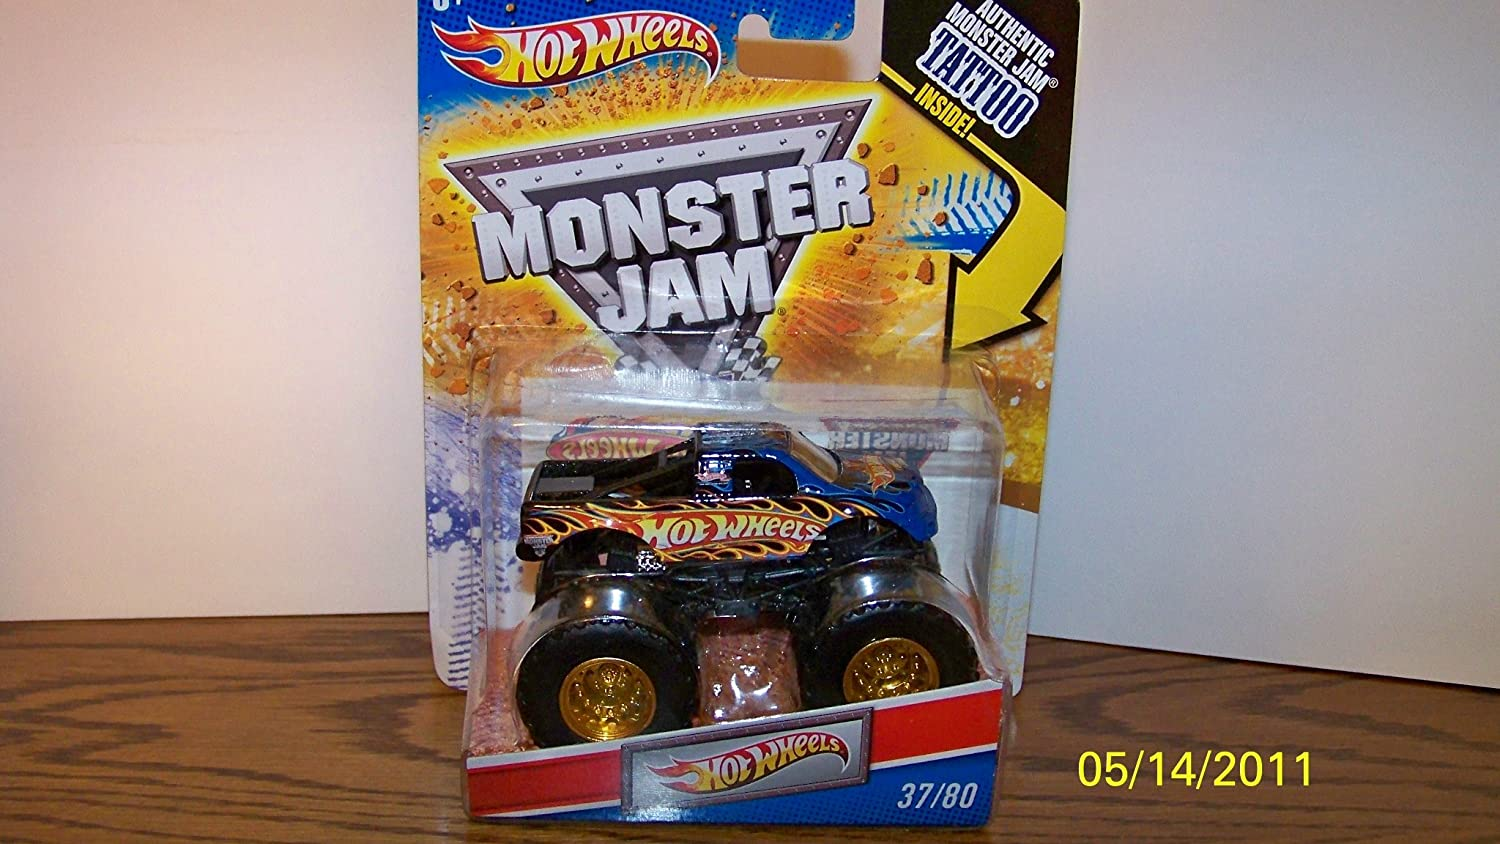 Hot Wheels Monster Jam Tattoo Series Hot Wheels Truck 1/64 Scale #37/80